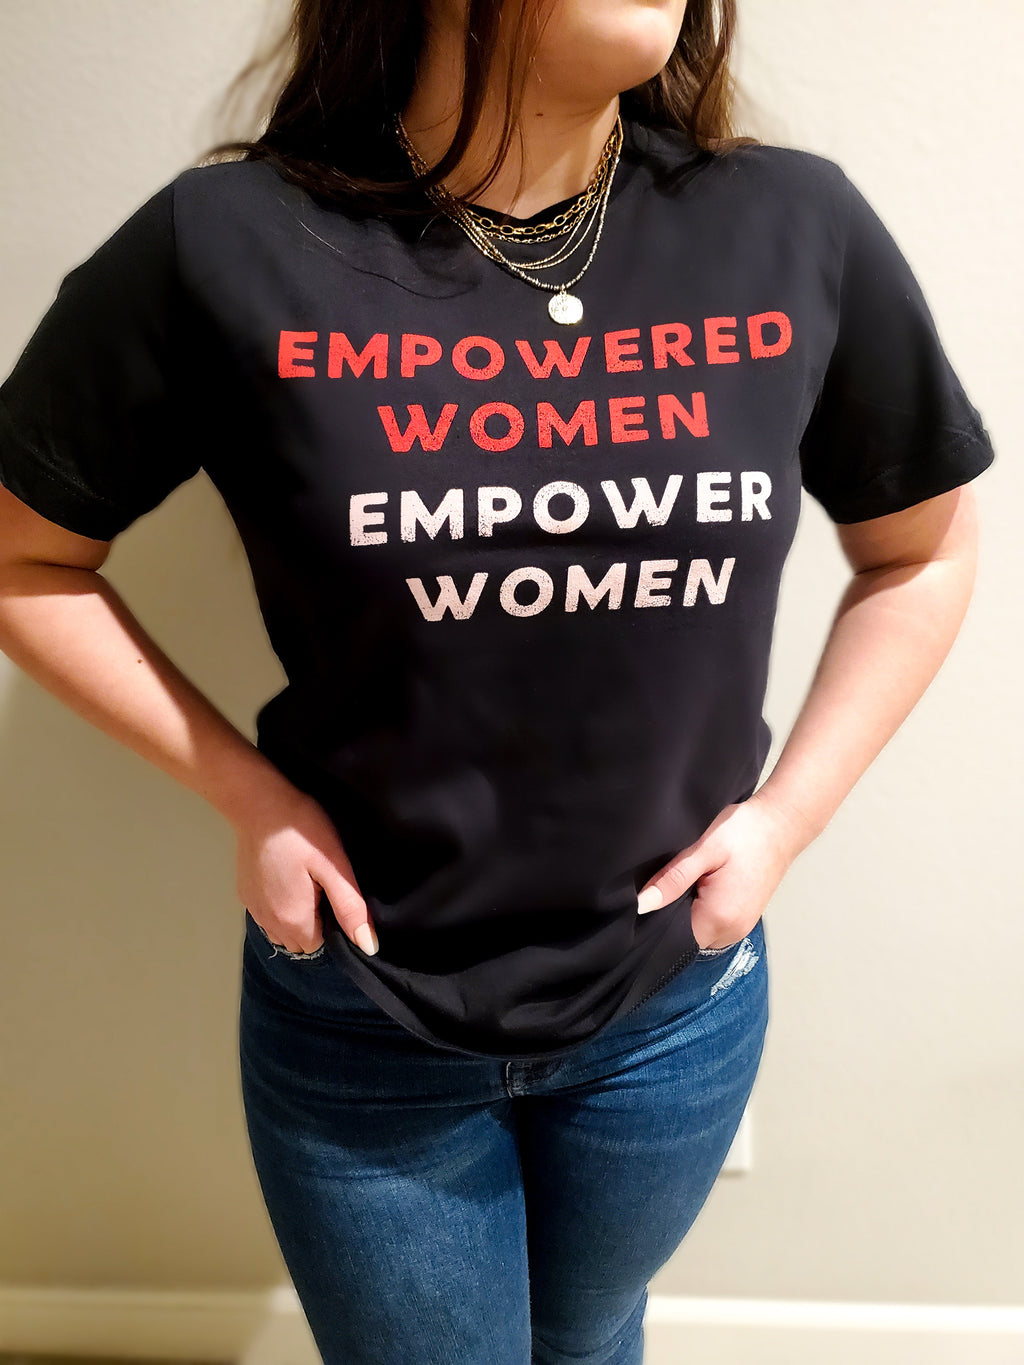 EMPOWERED WOMEN EMPOWER WOMEN Graphic Tee